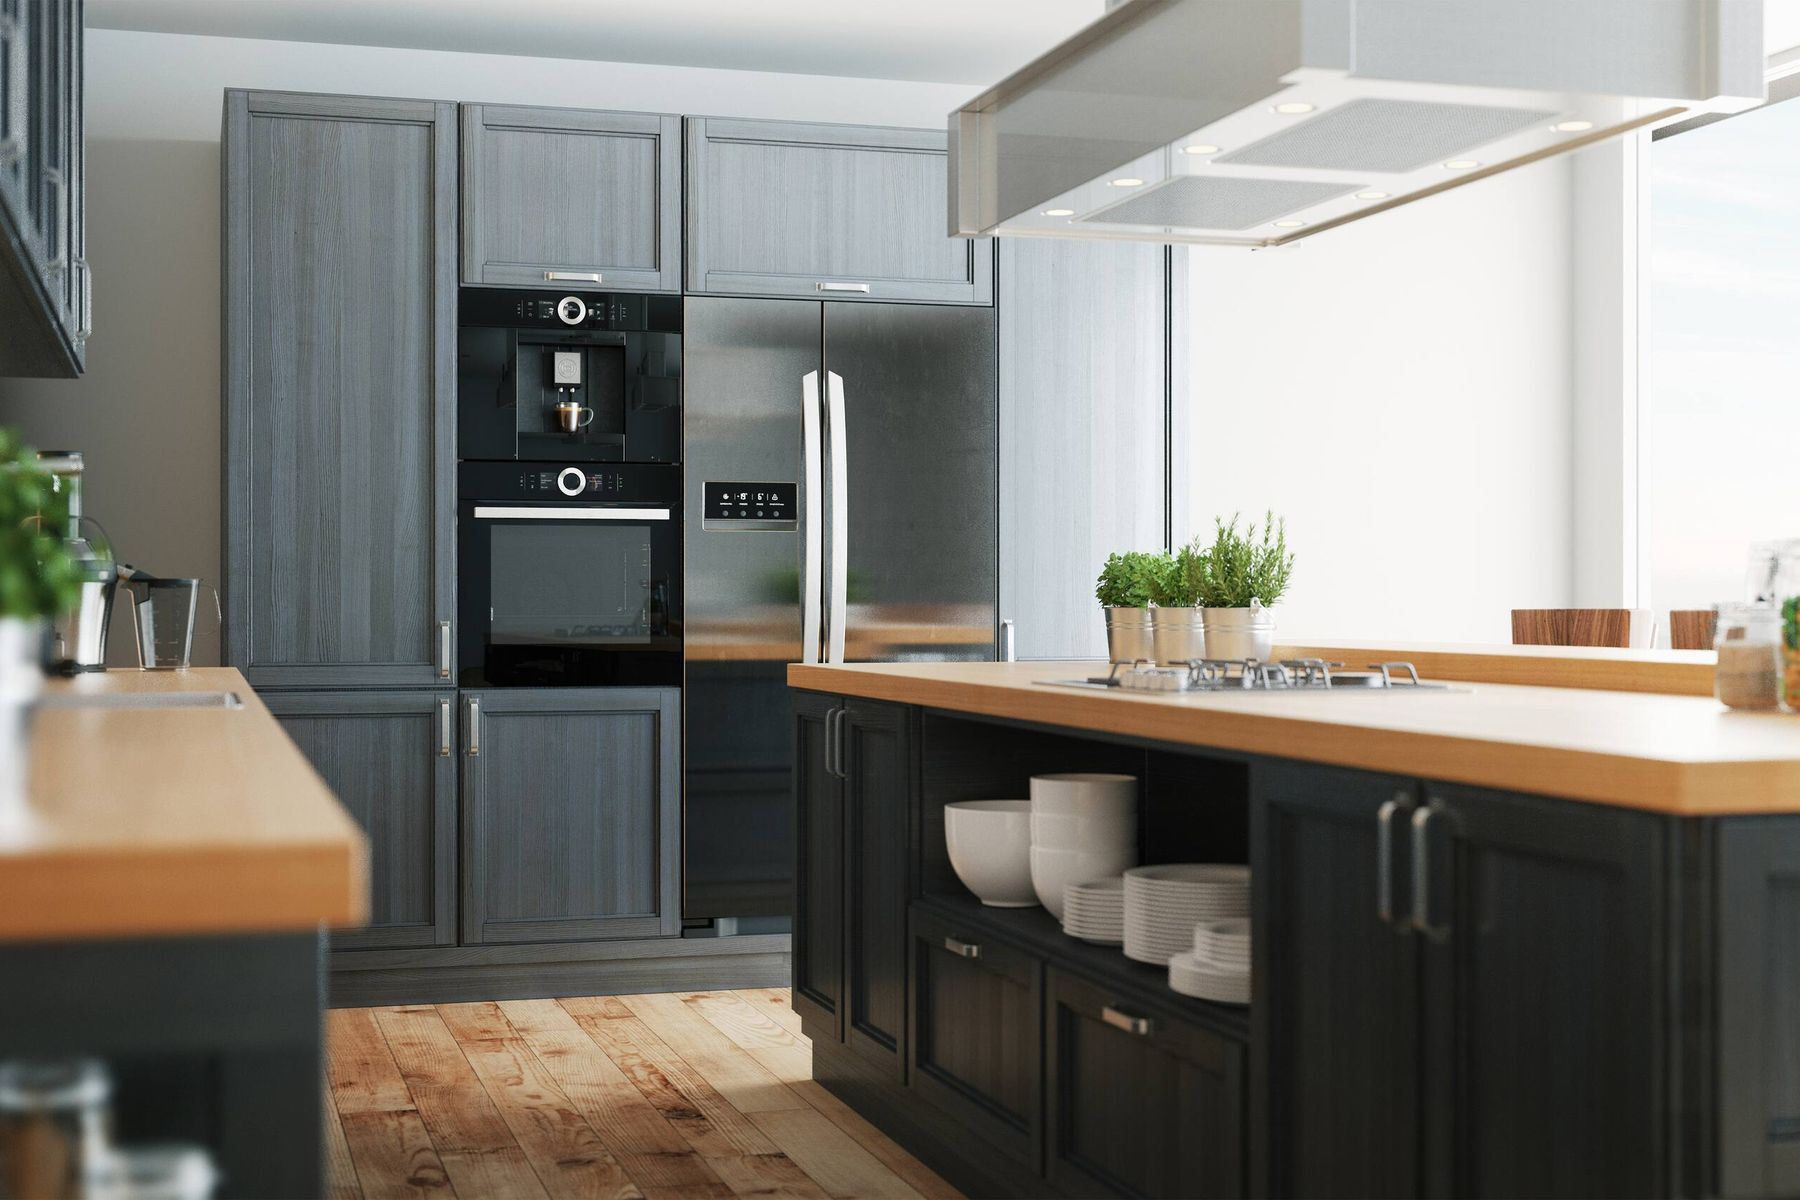 Need to Clean Grime from Your Kitchen Cabinets? Here's How!